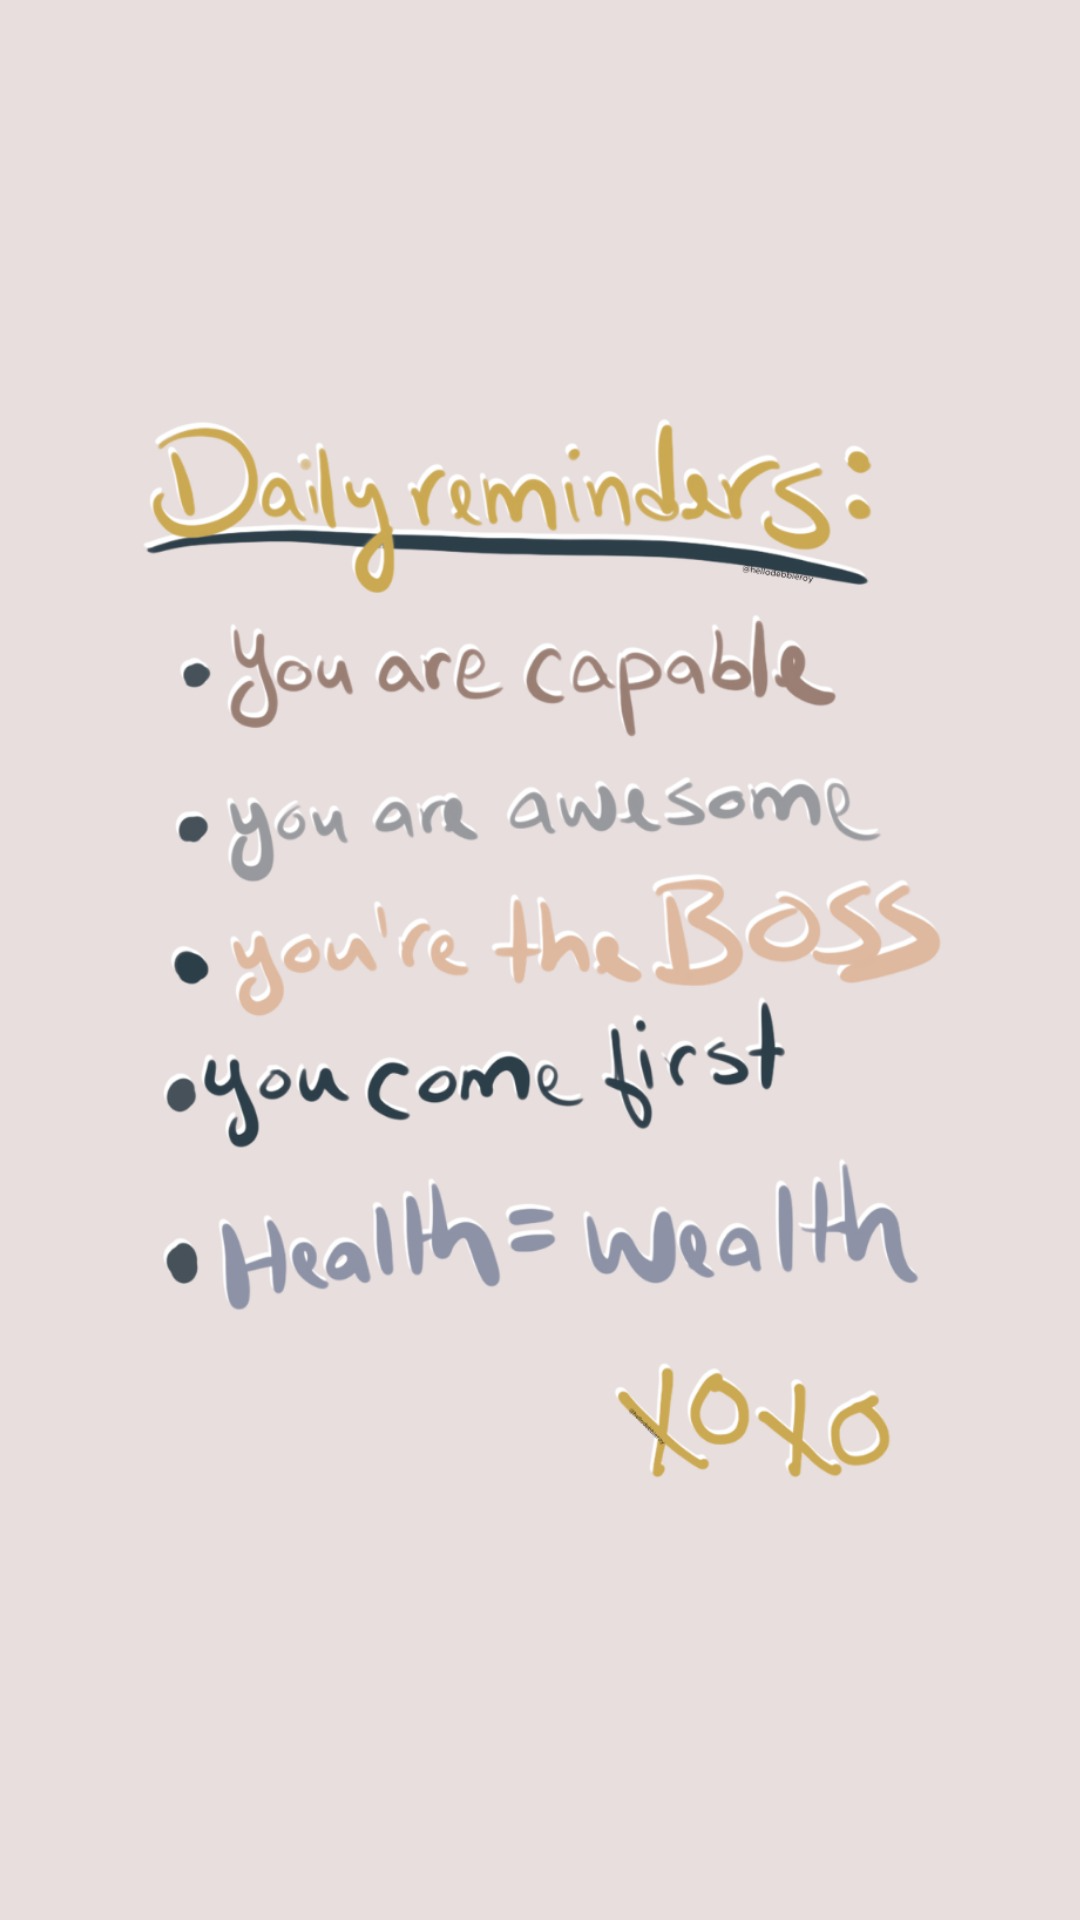 3 Positive Reminders to start your day!